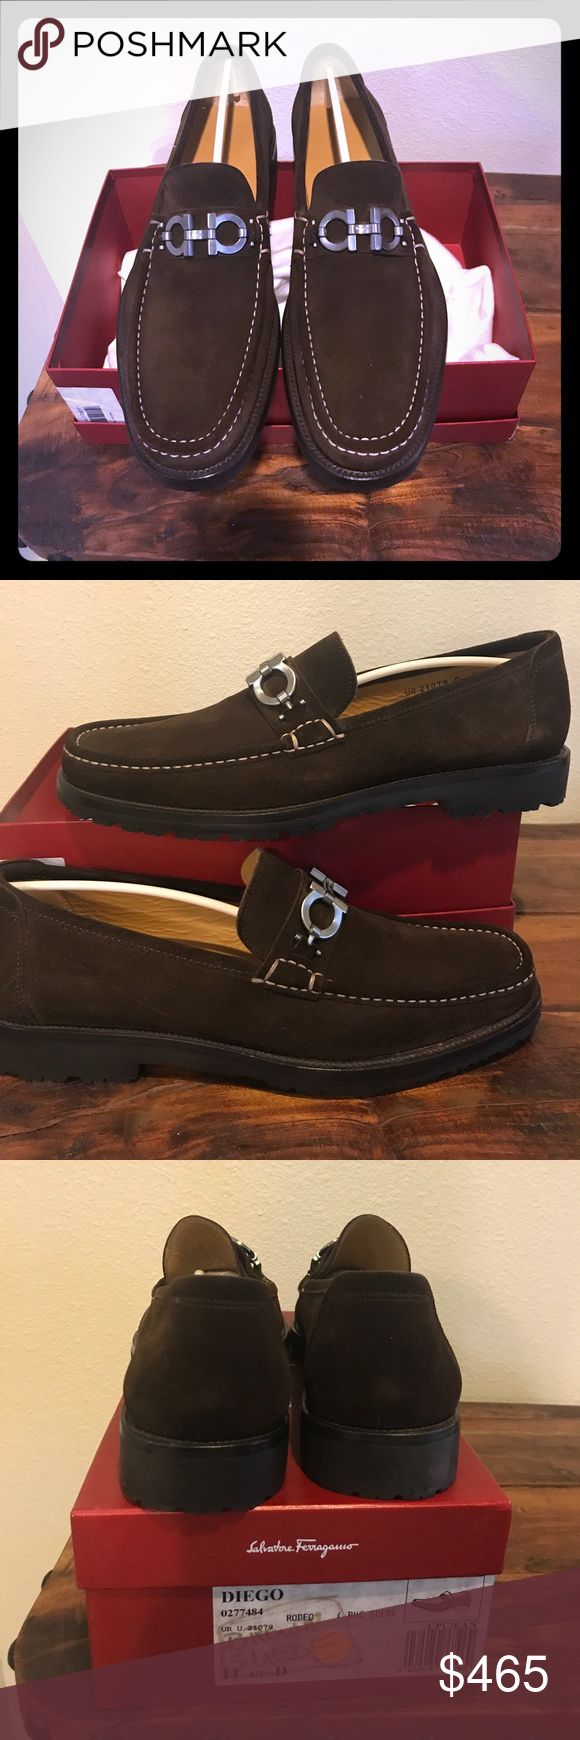 Ferragamo Men's Shoes Size 11.5 Men's Brown Suede loafers. Worn once for maybe an hour or so. Too narrow for my feet. Excellent condition!! Salvatore Ferragamo Shoes Loafers & Slip-Ons